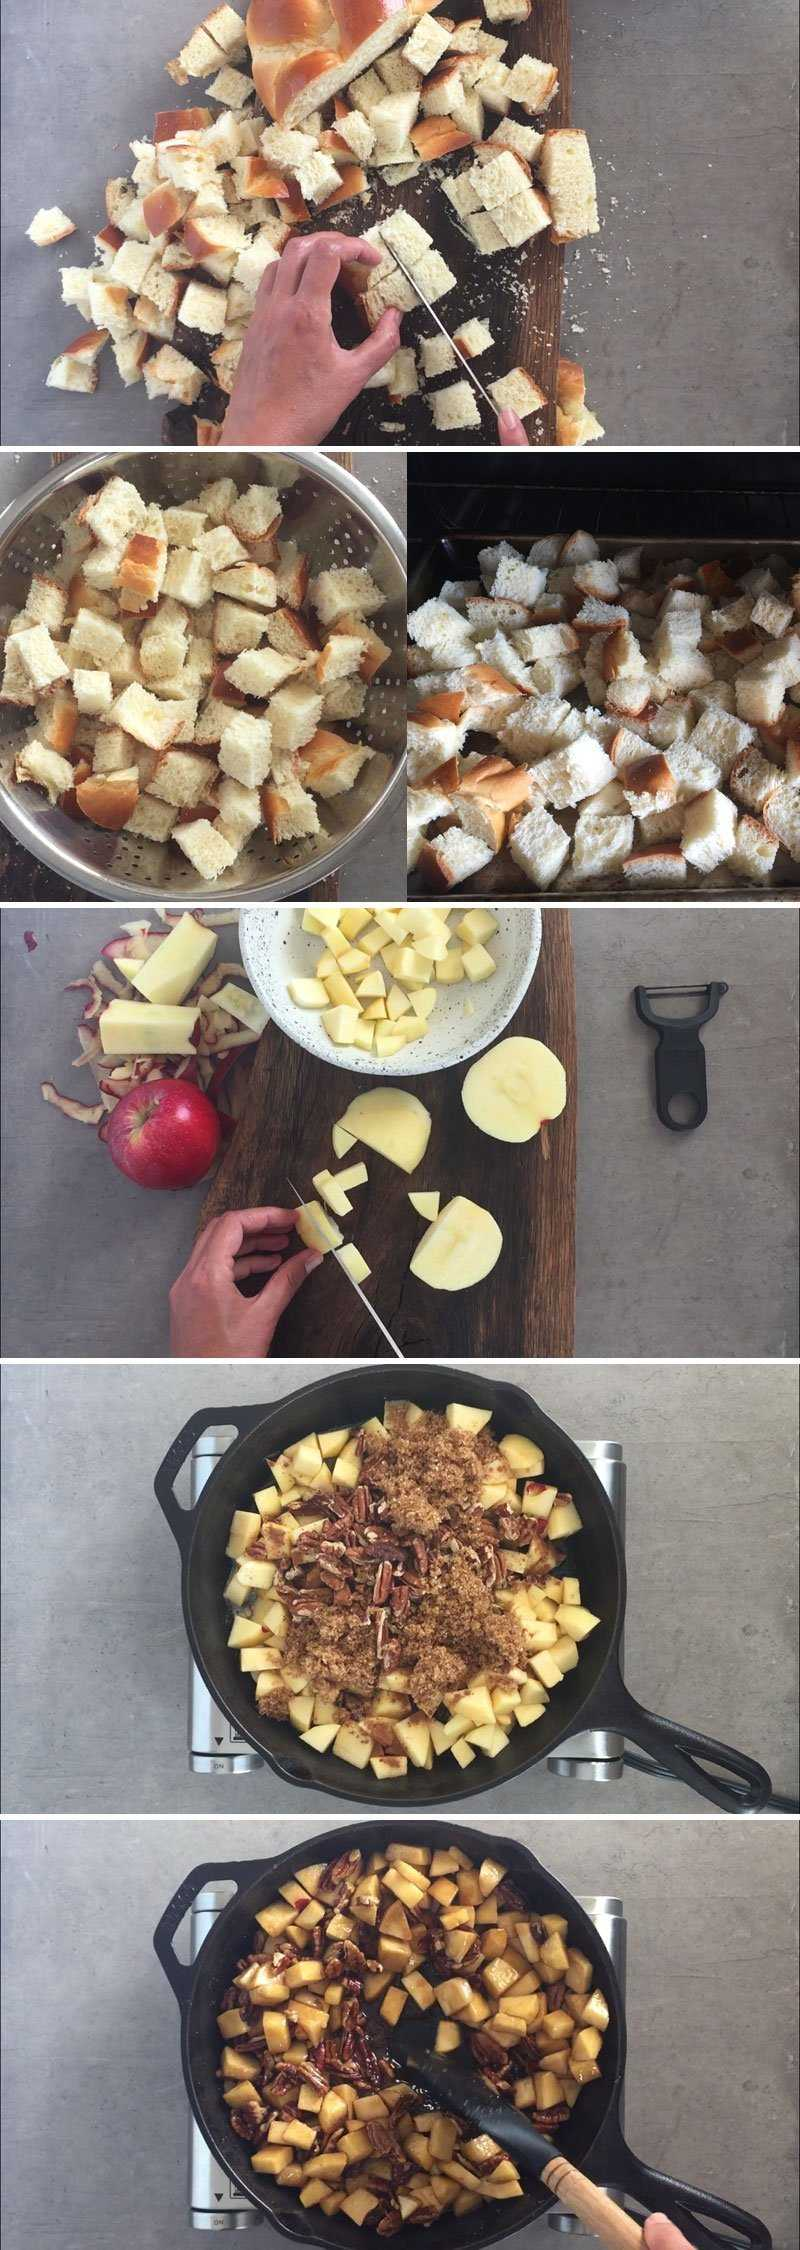 Preparation steps in the workflow of making apple bread pudding.